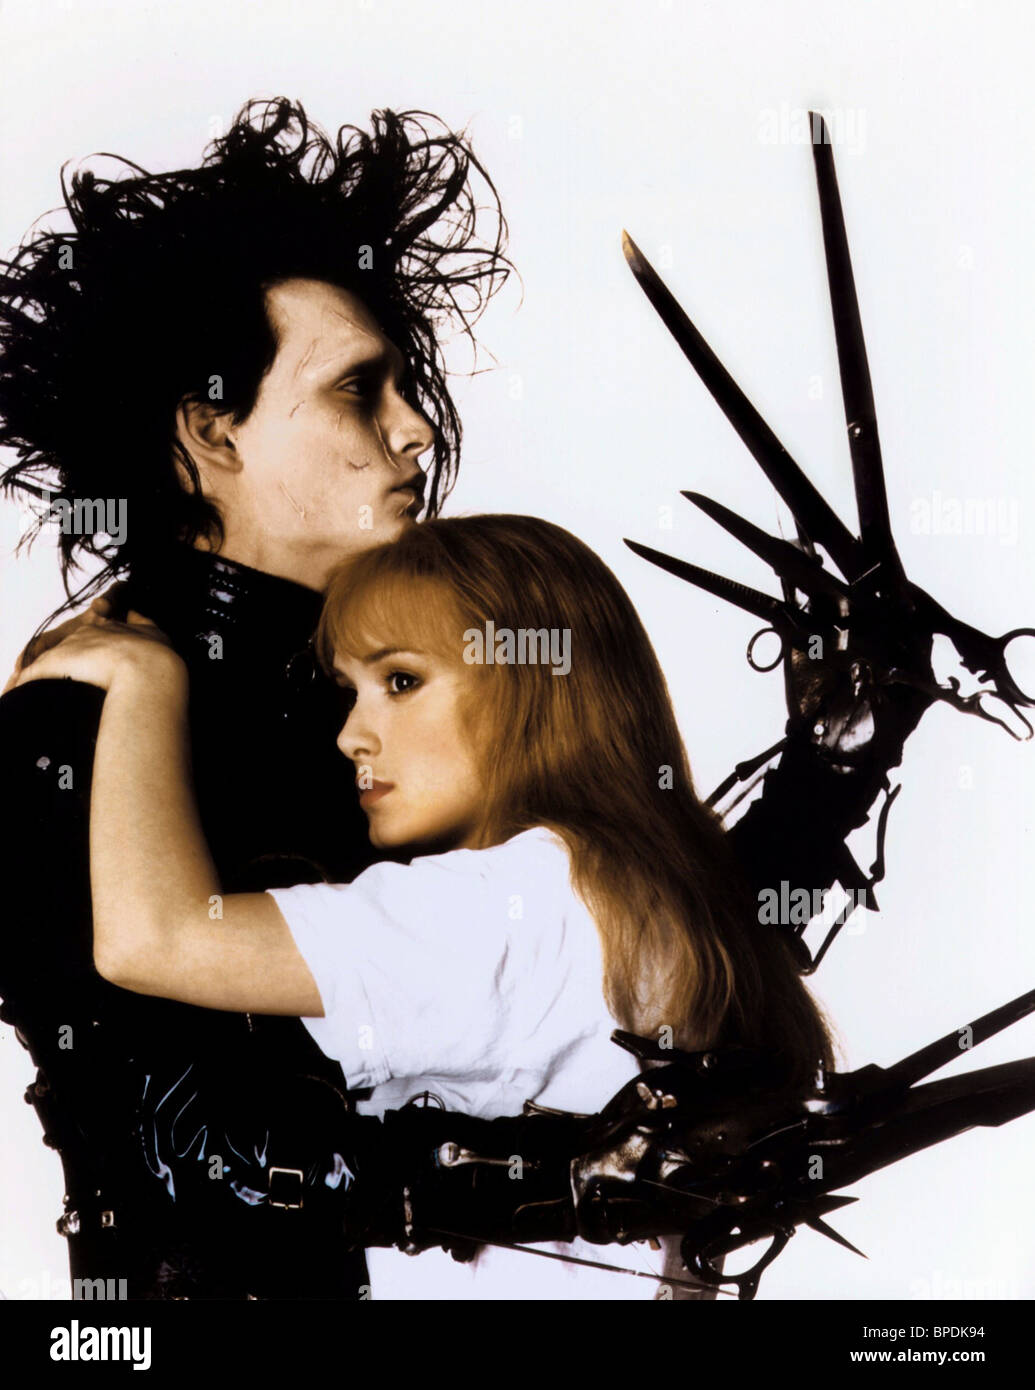 edward scissorhands full movie free download without registration